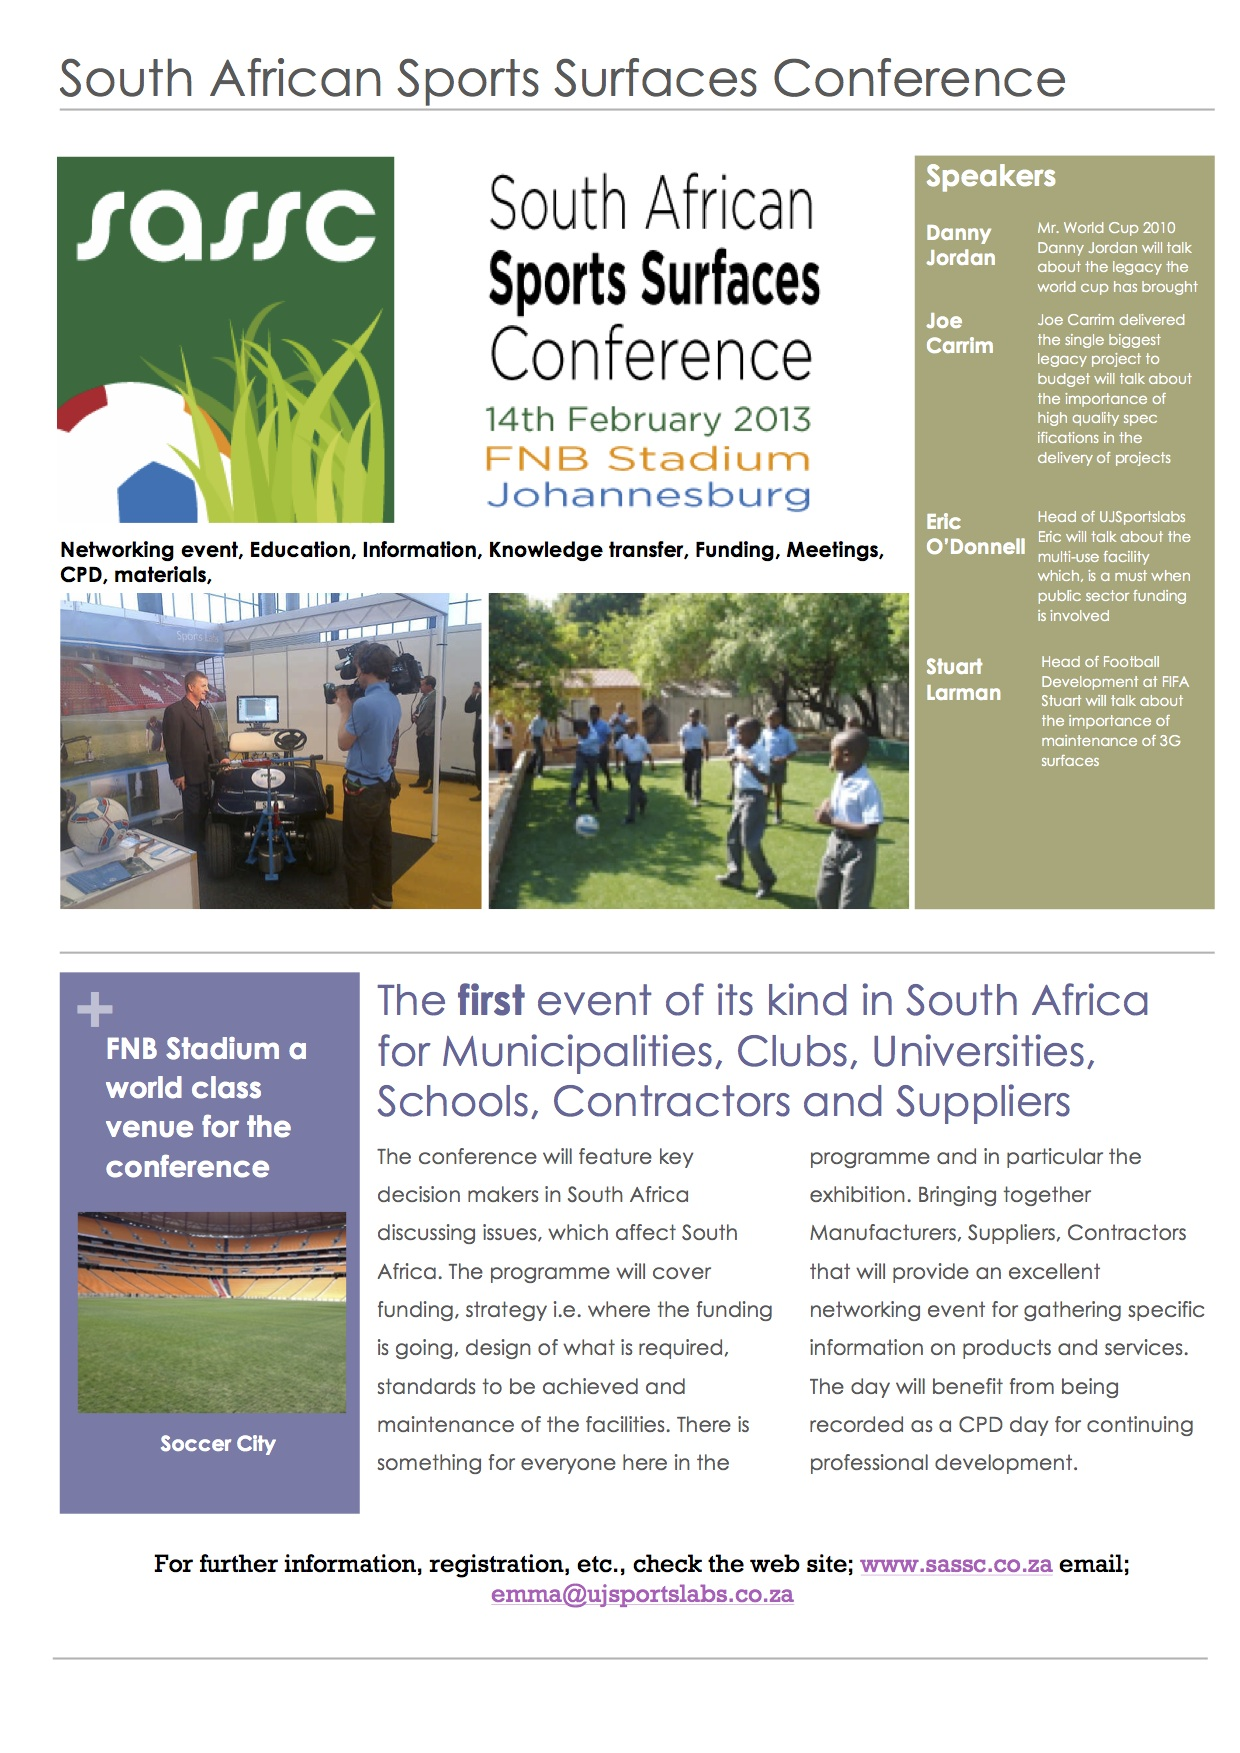 South African Sports Surfaces Conference